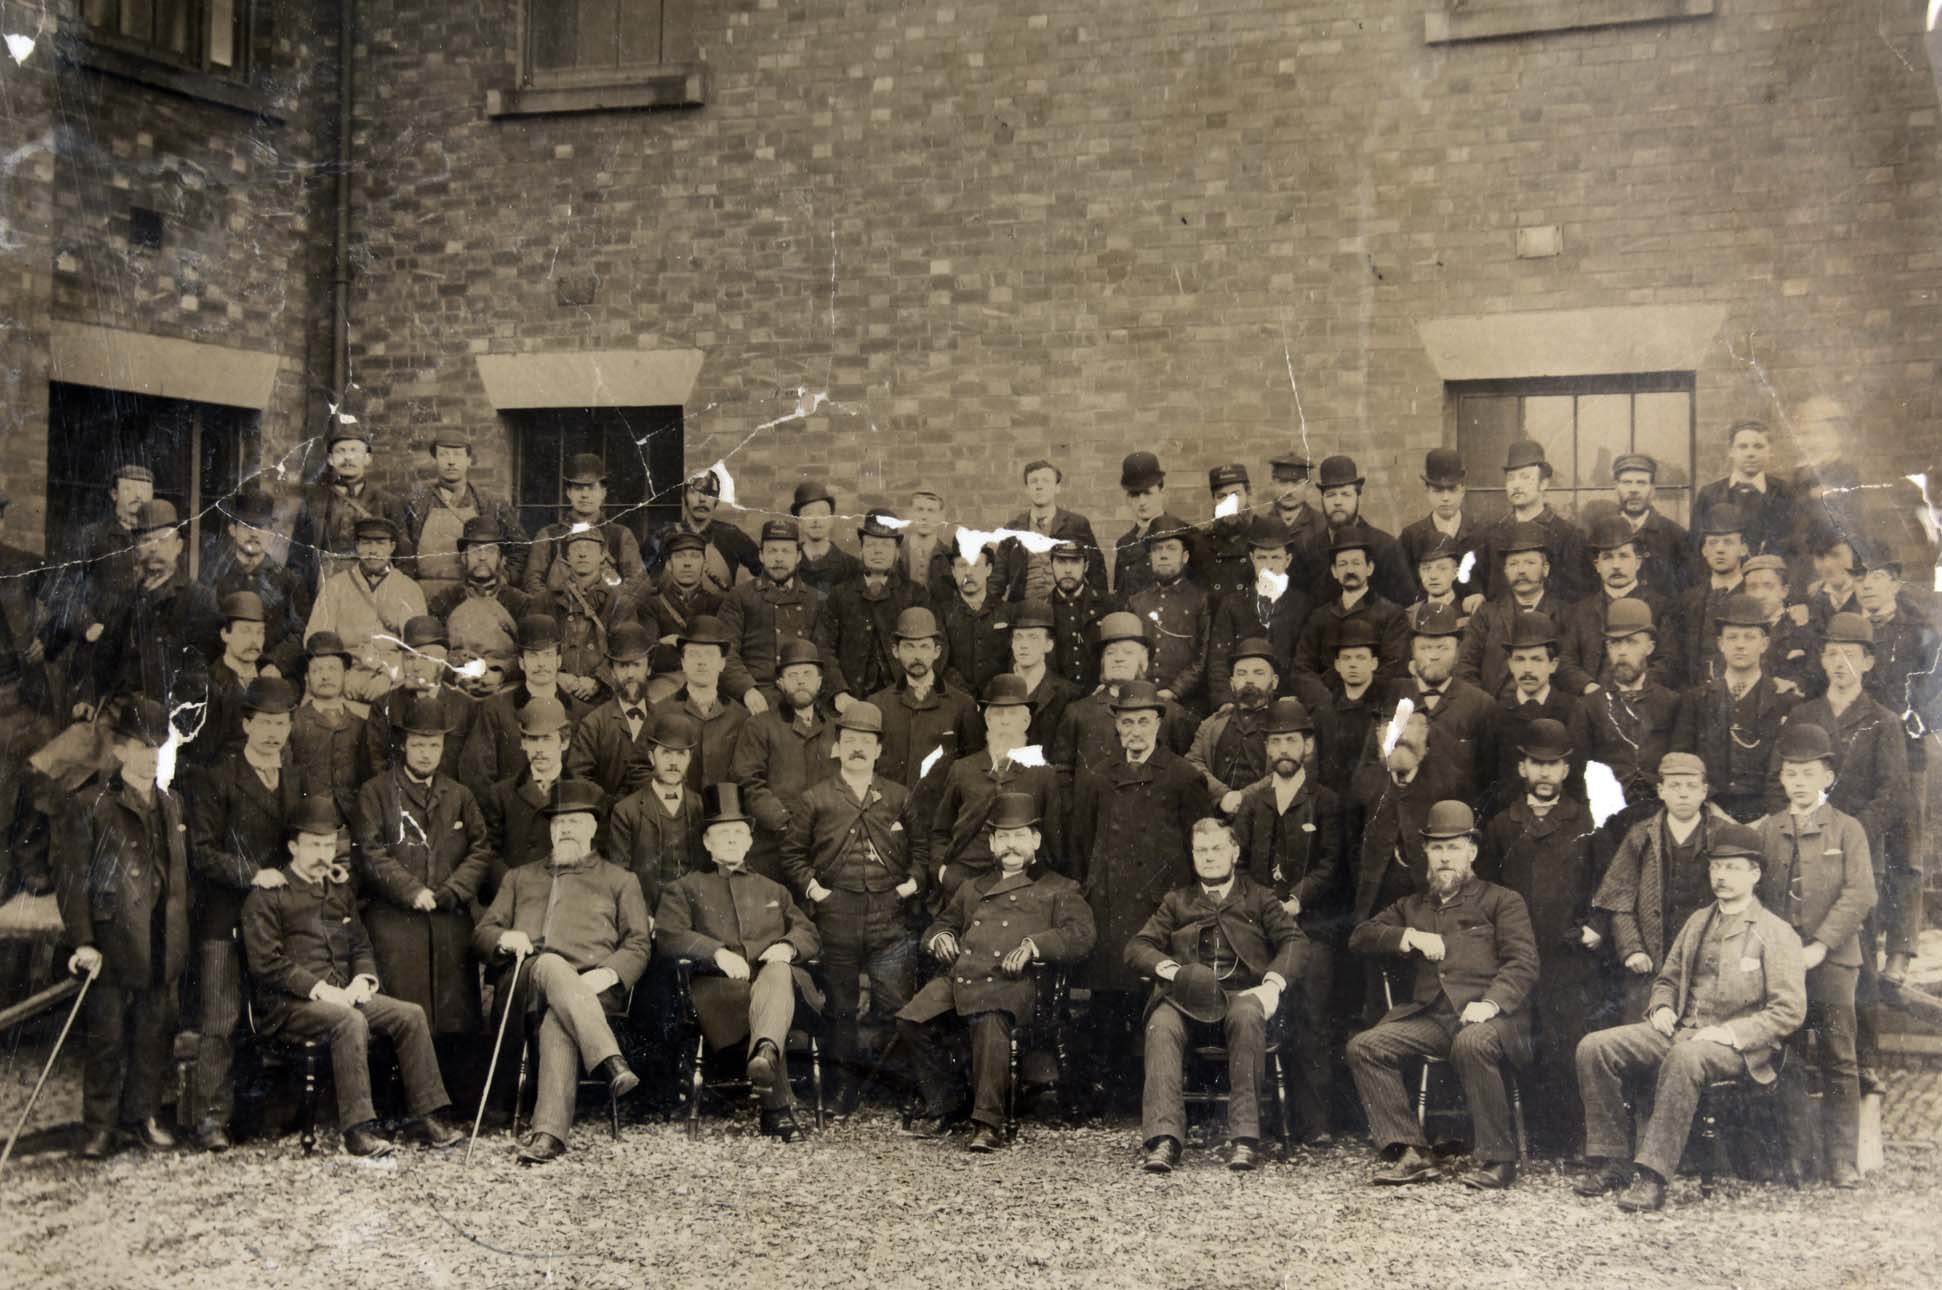 Midland Railway Staff c.1880s - Leicestershire Record Office